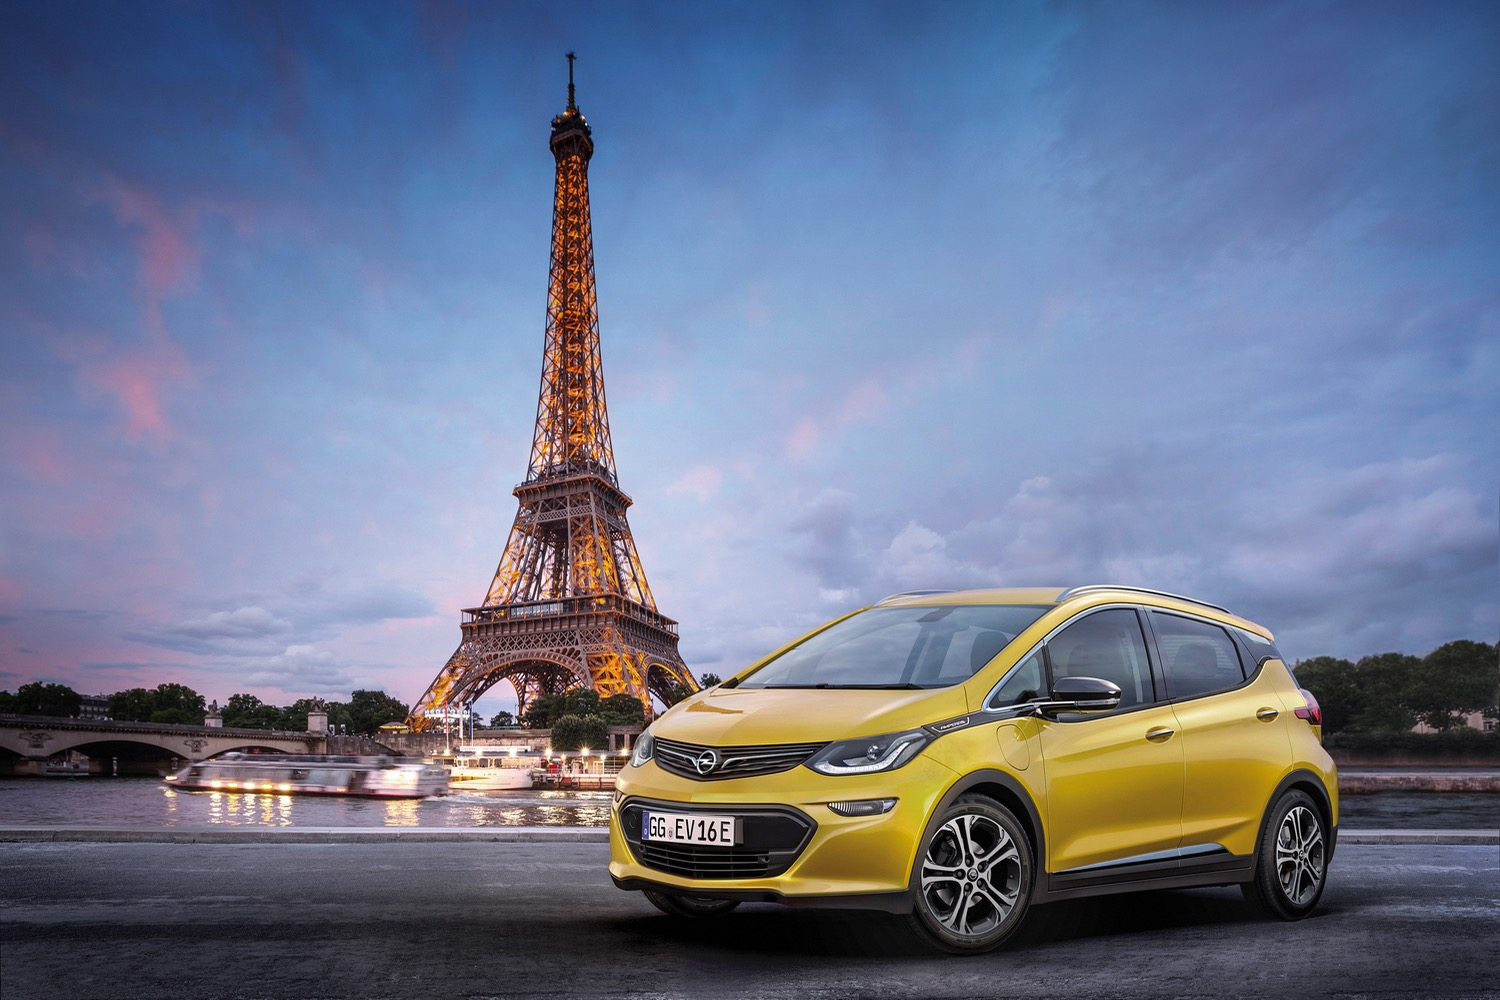 Opel will launch the 2017 electric model Ampera-e 20